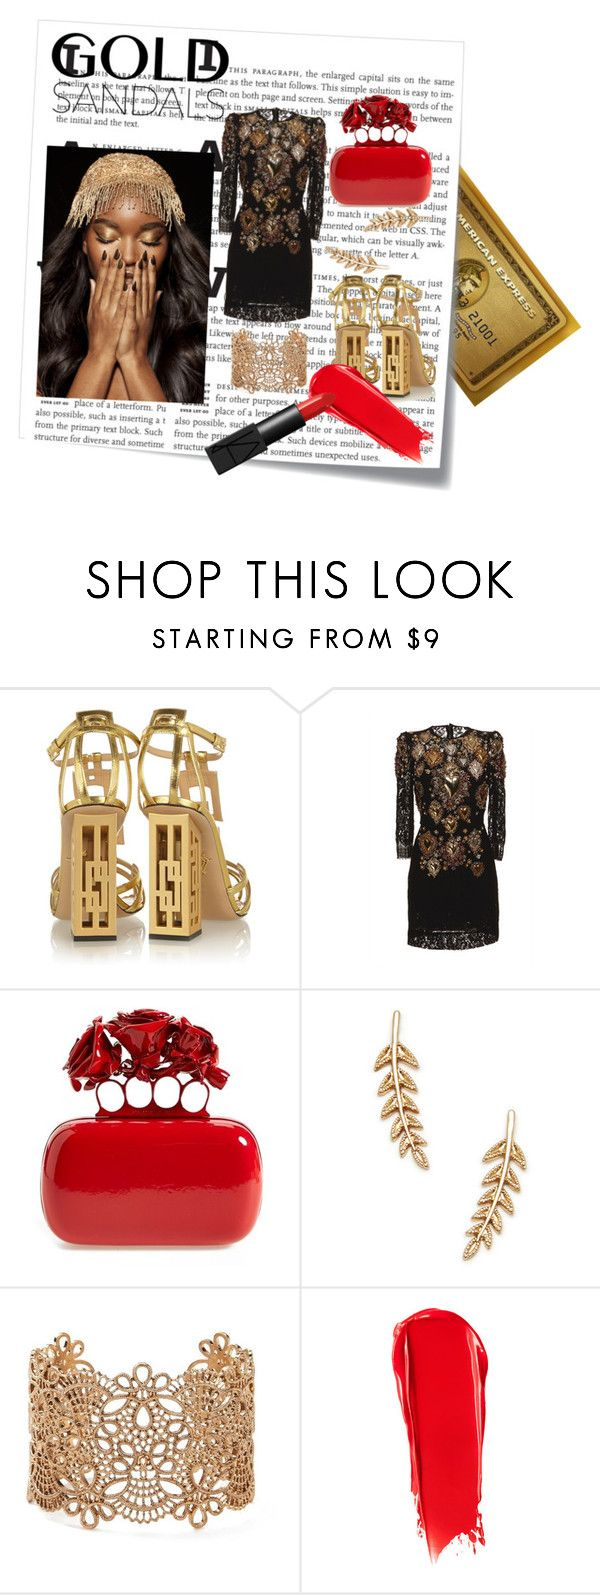 Golden age #2 by hacii on Polyvore featuring moda, Dolce&Gabbana, Charlotte Olympia, Alexander McQueen, Forever 21, Sole Society, NARS Cosmetics, Post-It, goldsandals and beoriginal